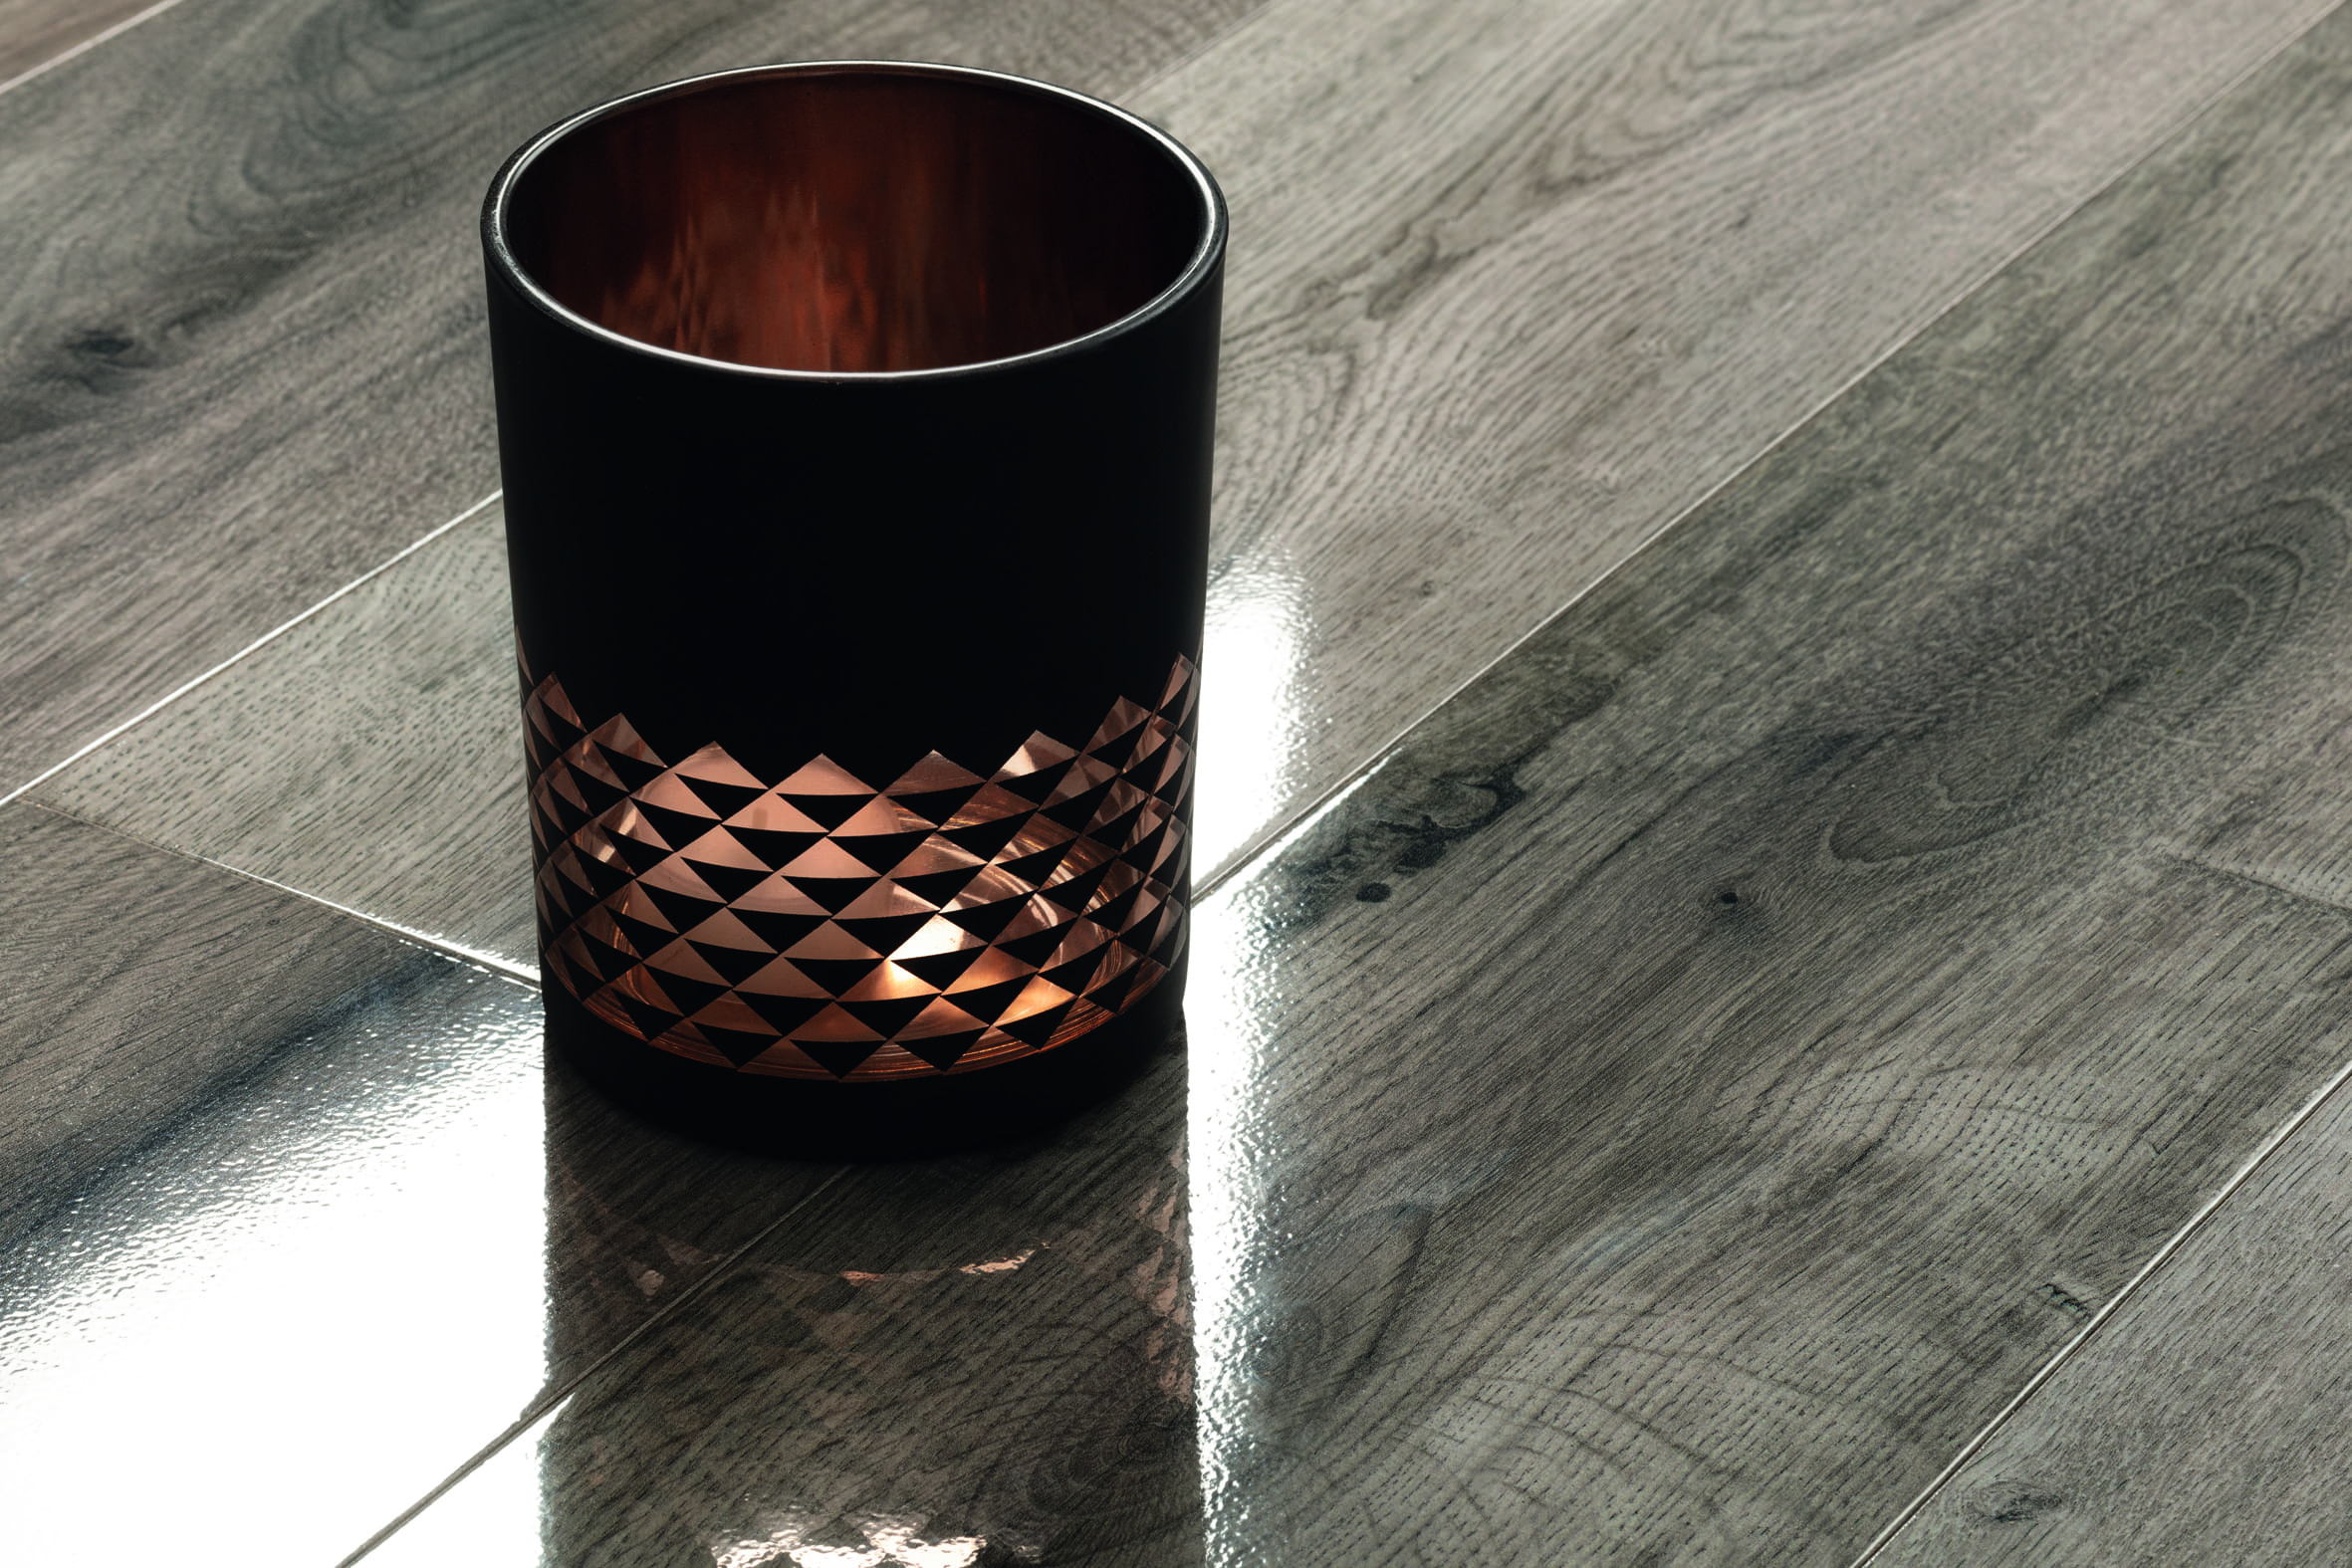 Candle and natural lighting reflected in the gloss of laminate flooring